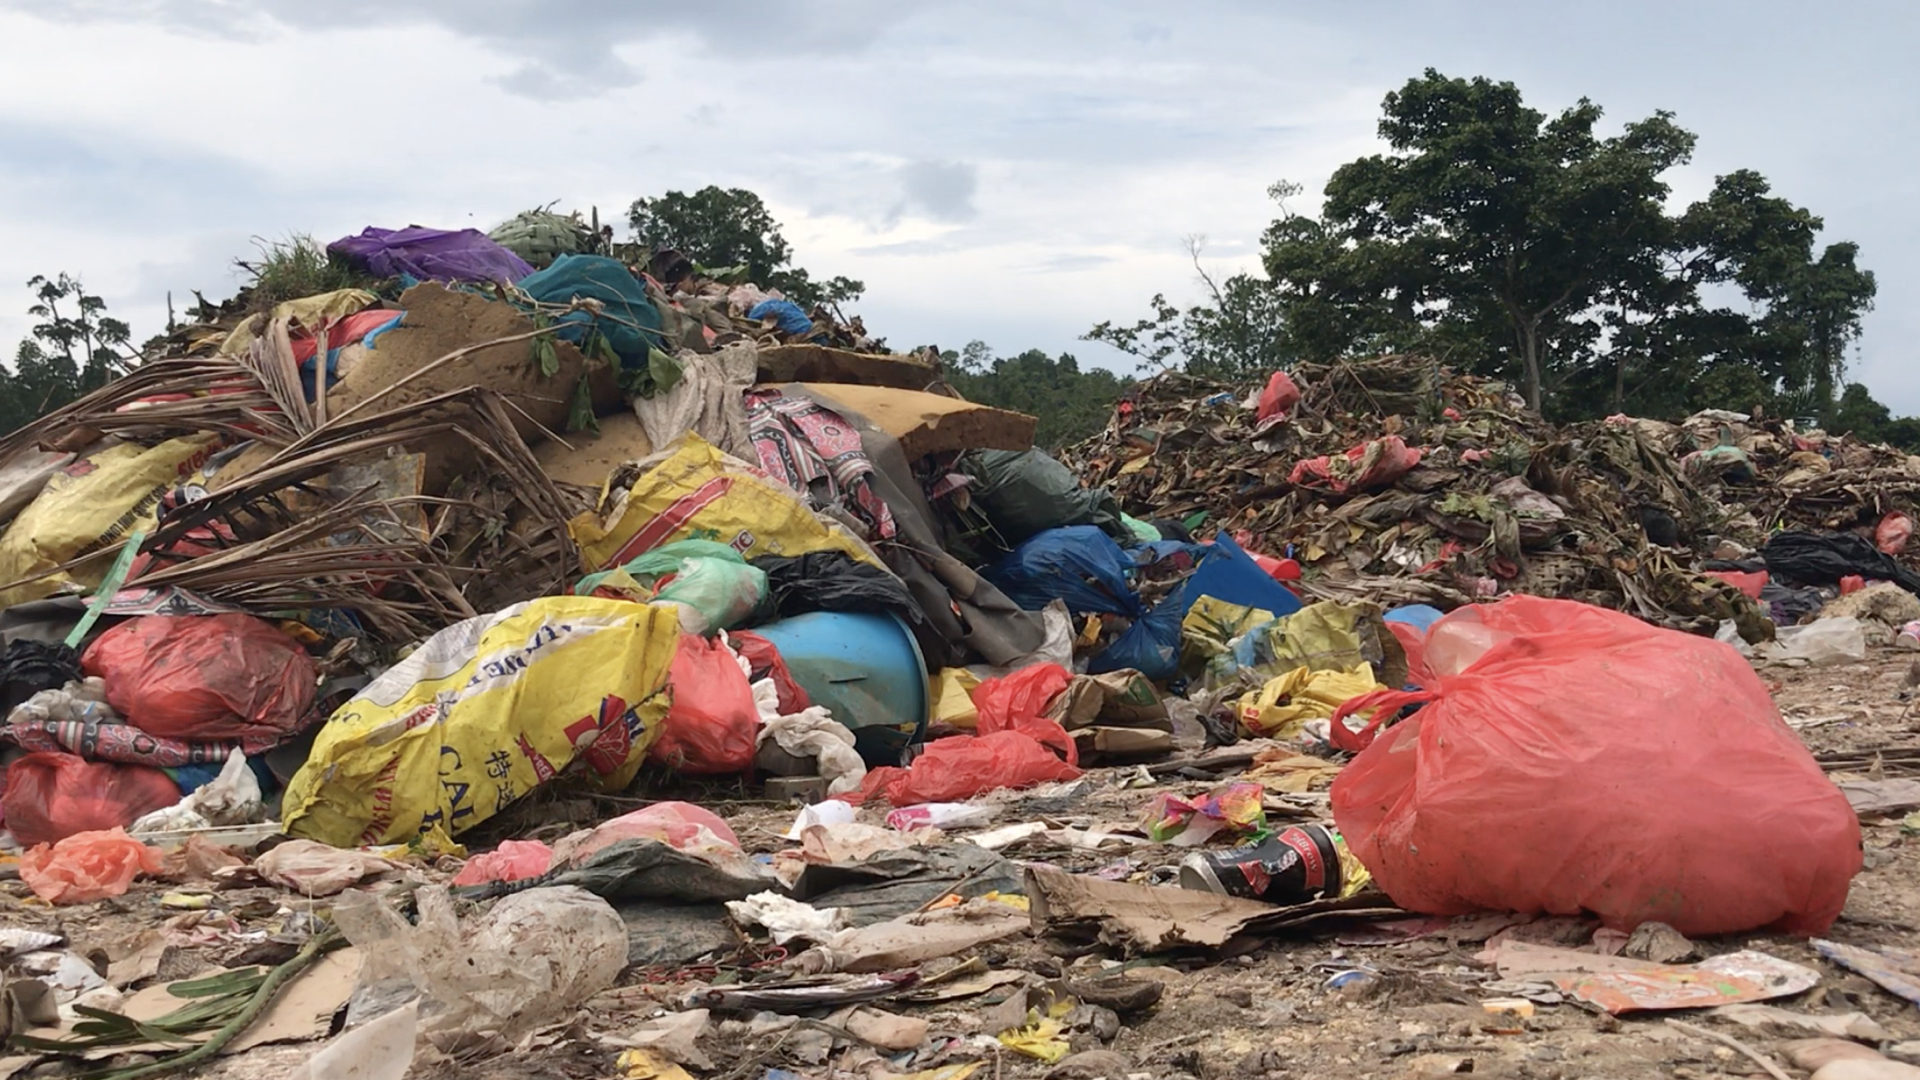 An uncontrolled landfill is where some of the plastic of Gizo ends up. The open dump spills down the hillside into streams and rusted cars mix with fetid waste and food packaging.